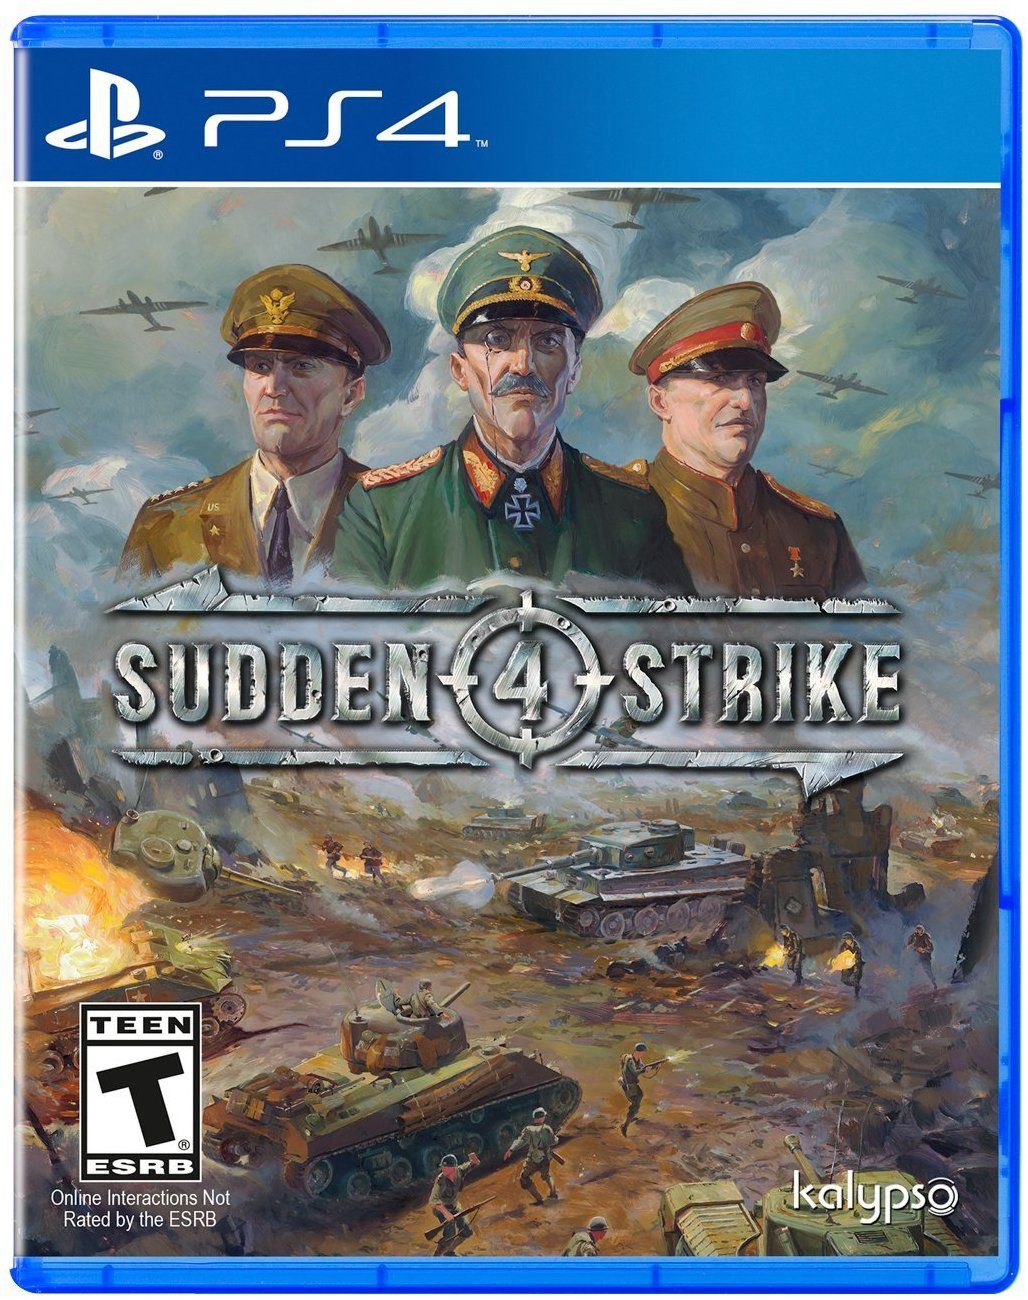 Sudden Strike 4 offers realistic realtime strategy